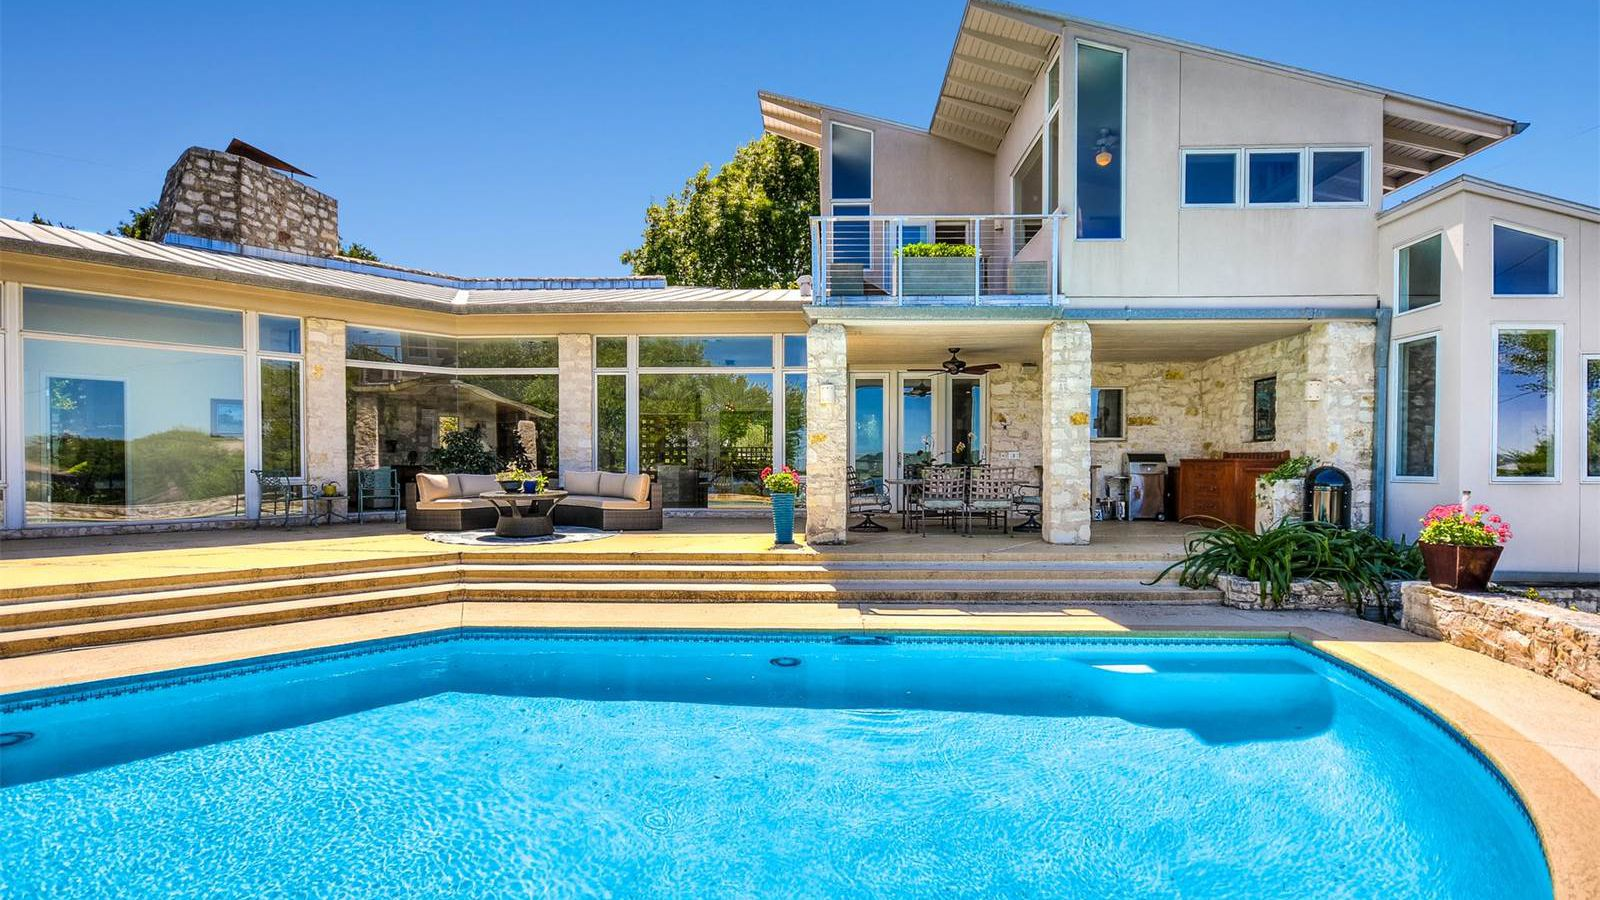 Stylish lake travis contemporary asks 1 2m curbed austin for Contemporary homes for sale in austin